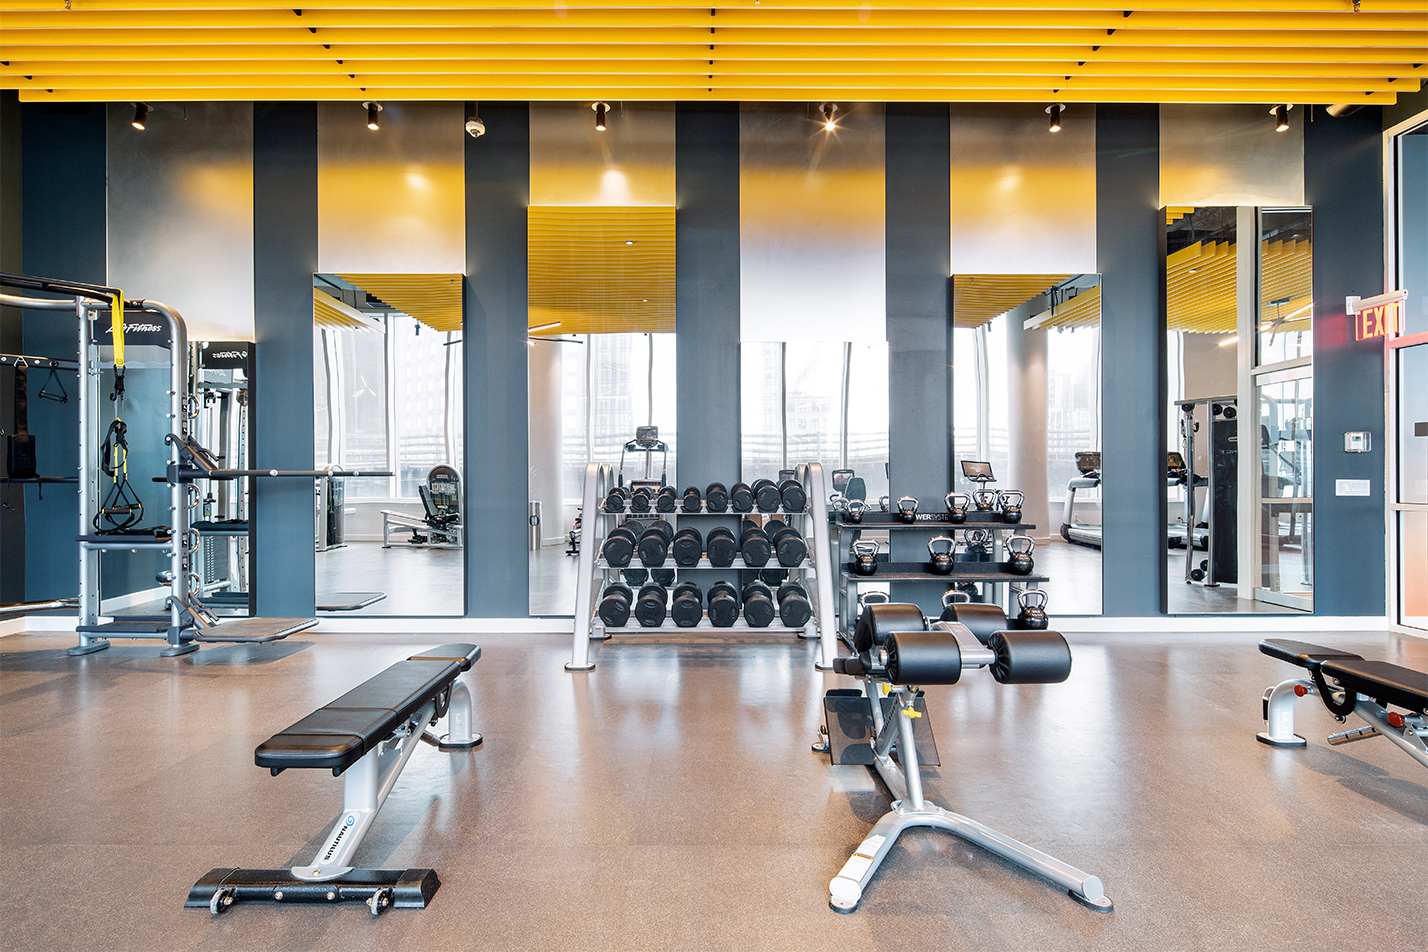 Fitness center with dumbbells, kettlebells, flat bench, and incline bench